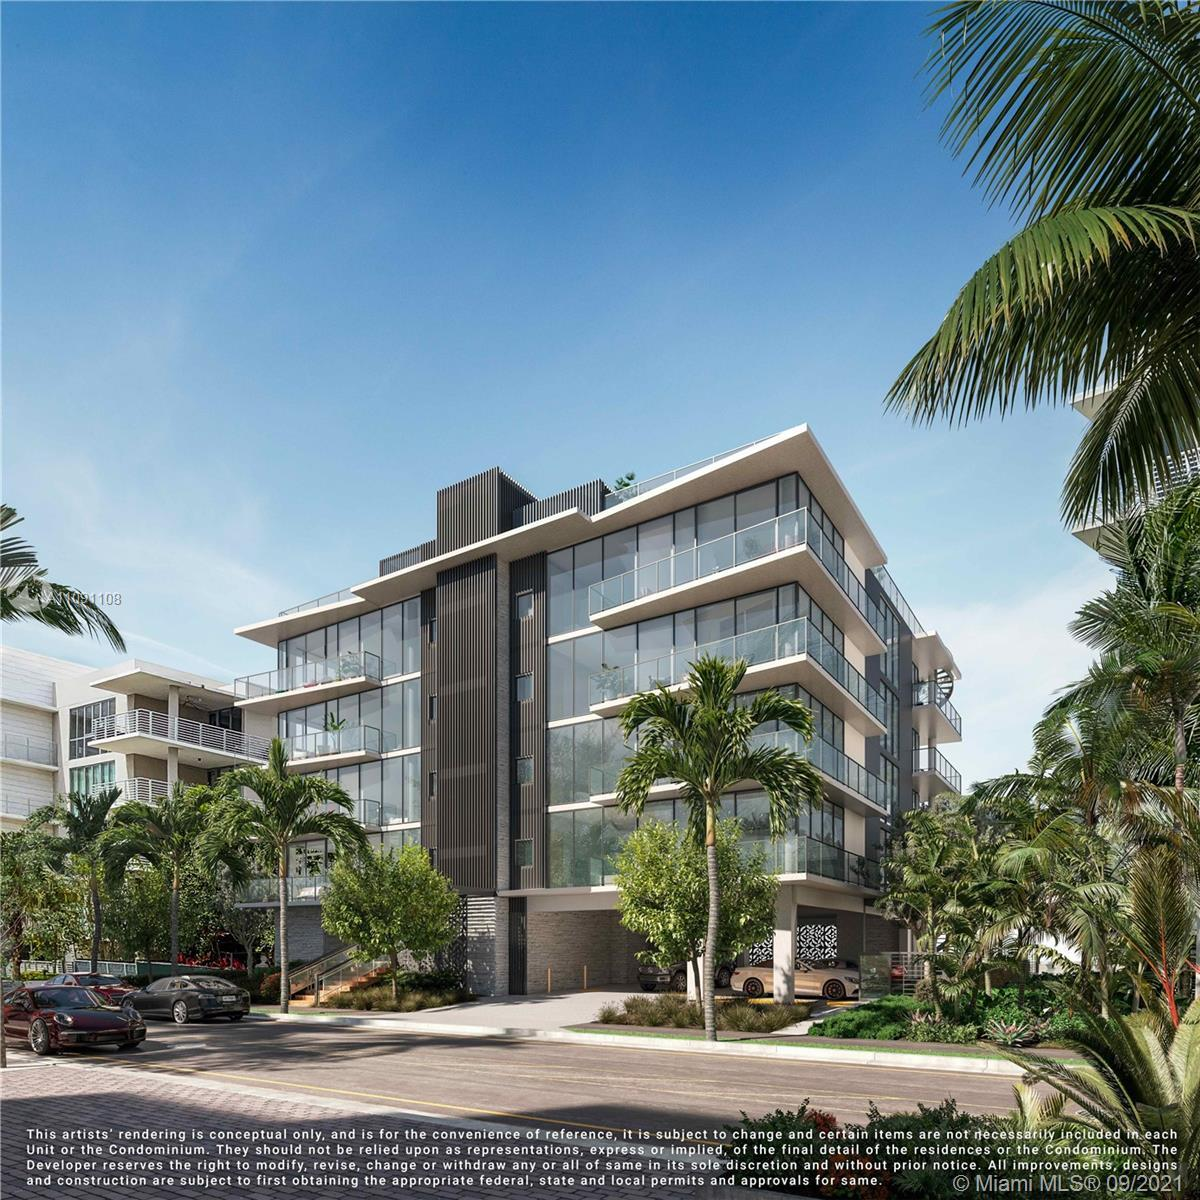 Casa Murano Las Olas will rise 5 stories on beautiful Rio Grande Canal. Only 8 residences approx. 3,